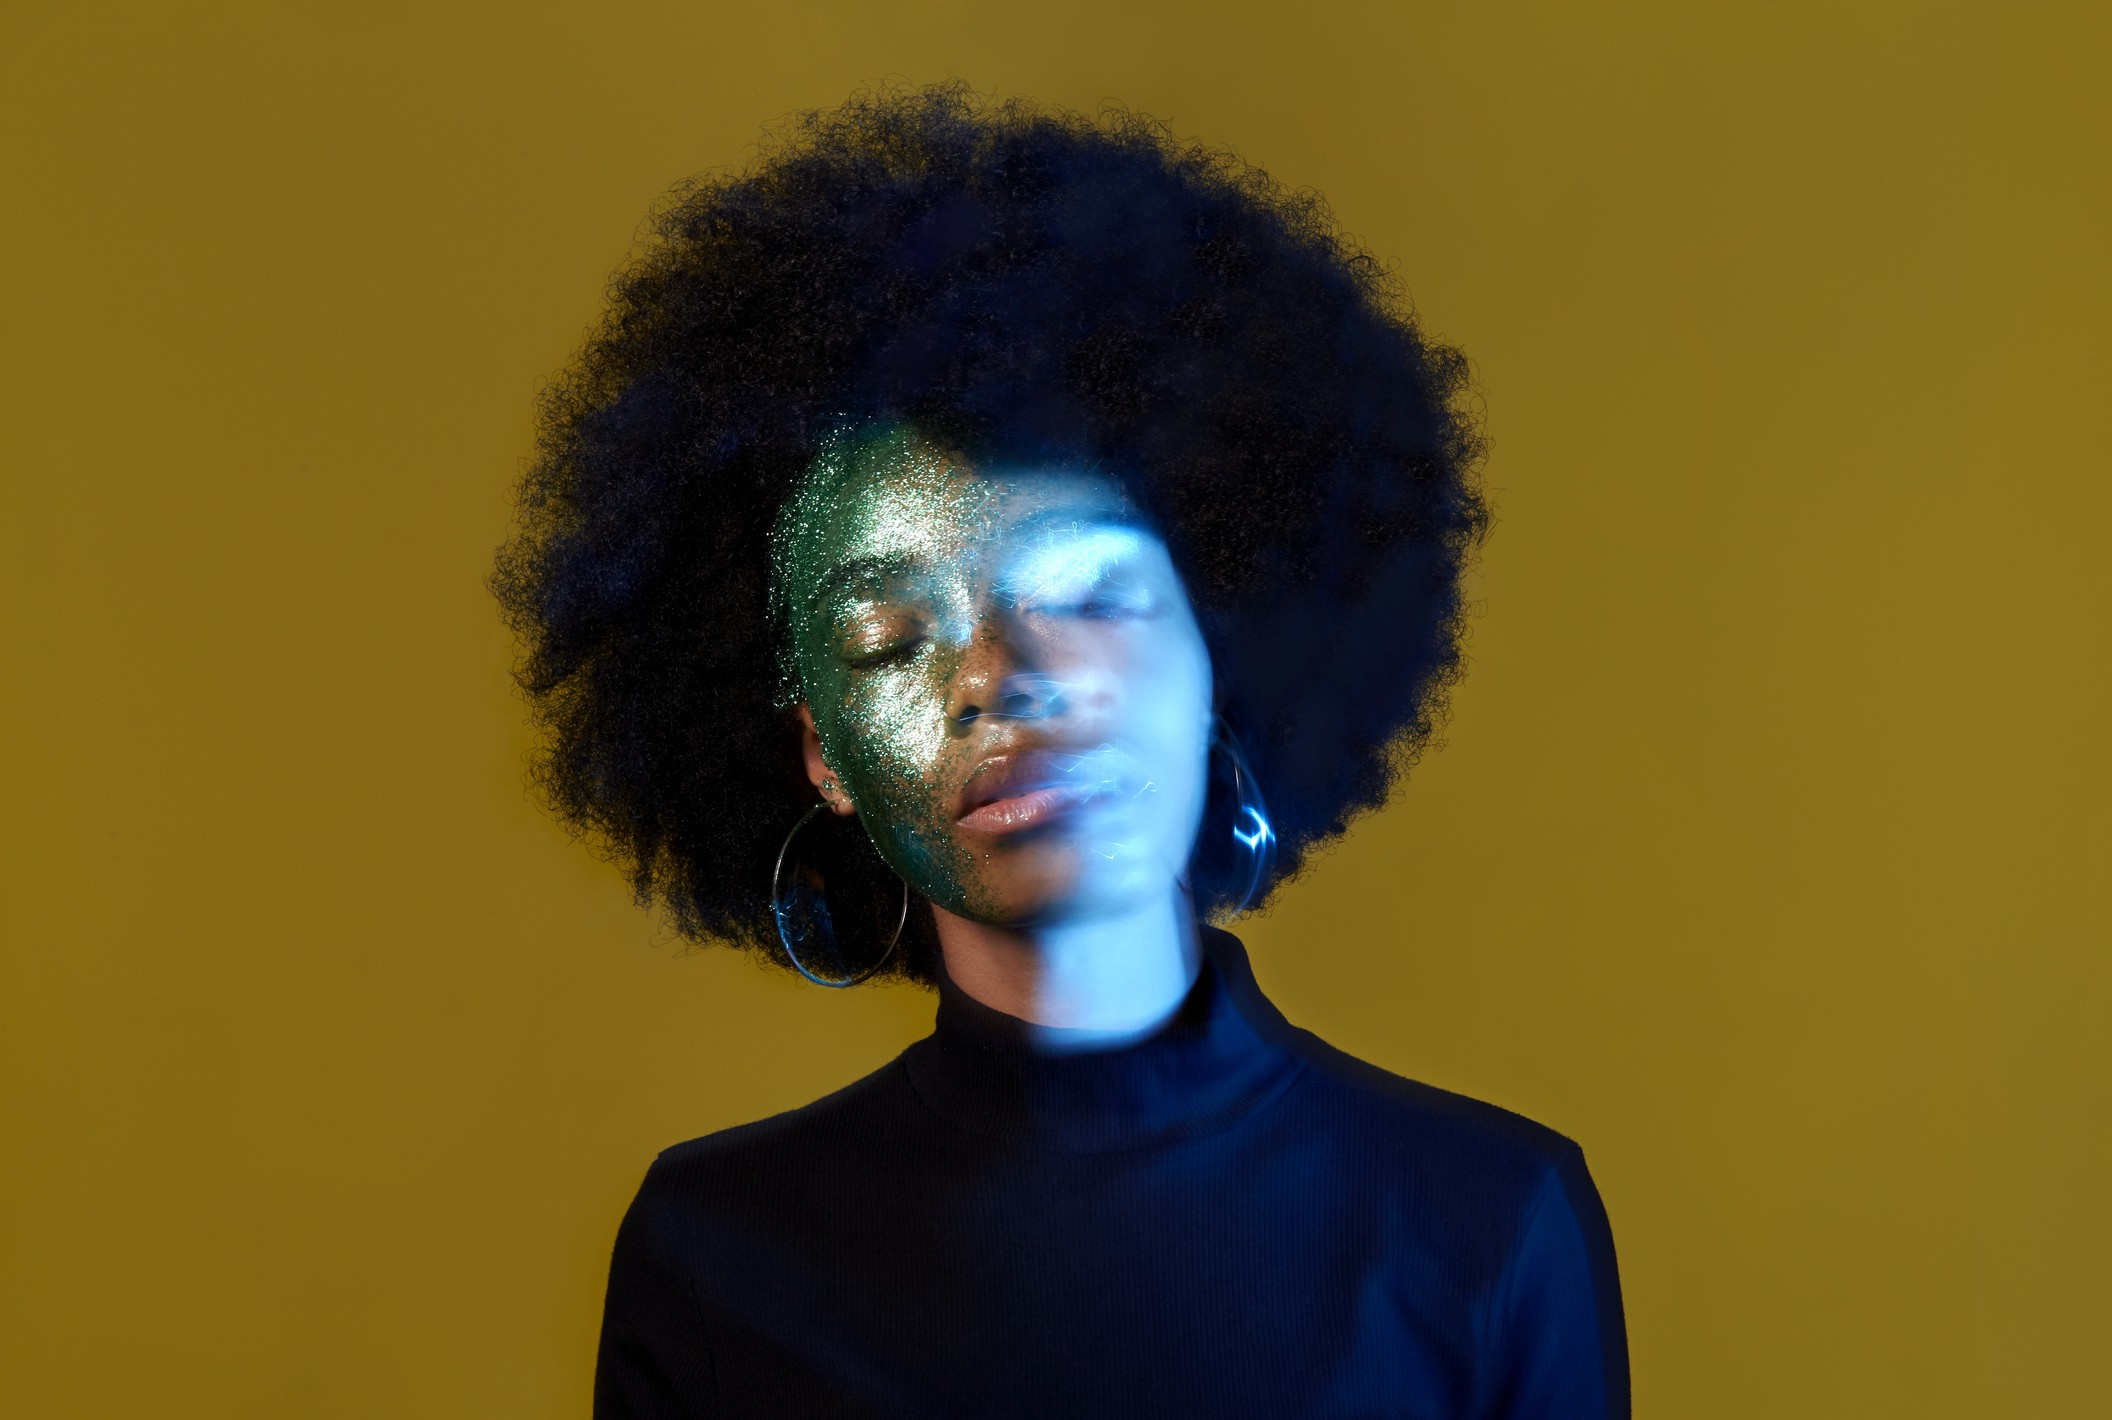 A conceptual portrait of a black woman with glitter on her face, with her face slightly blurred/double exposed.